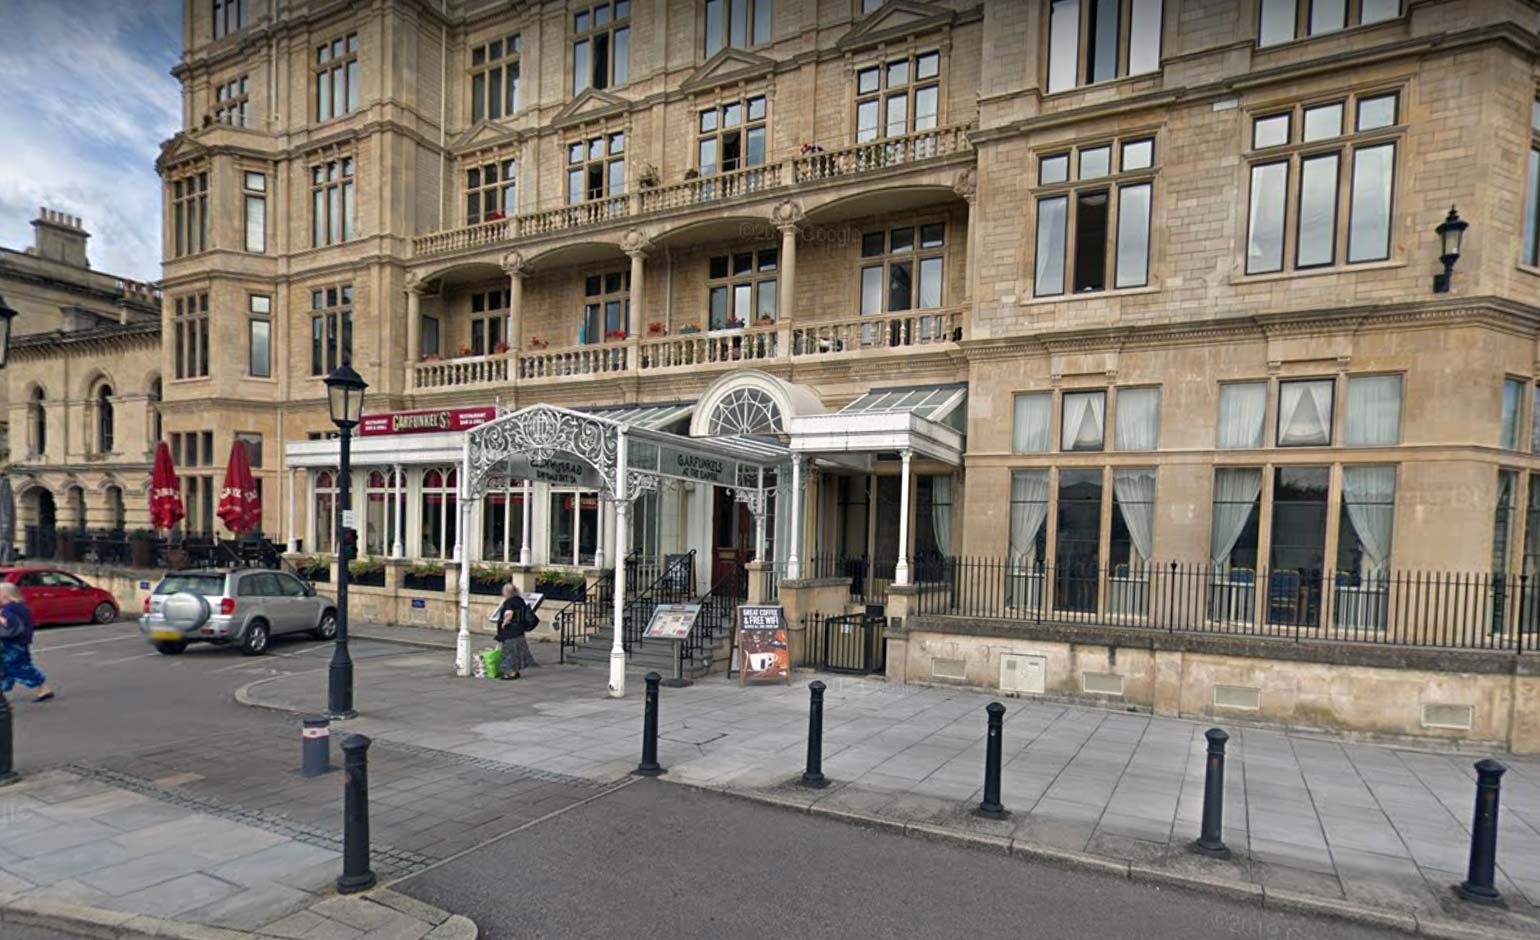 £1 million refurbishment of Garfunkels restaurant in Bath allowed on appeal